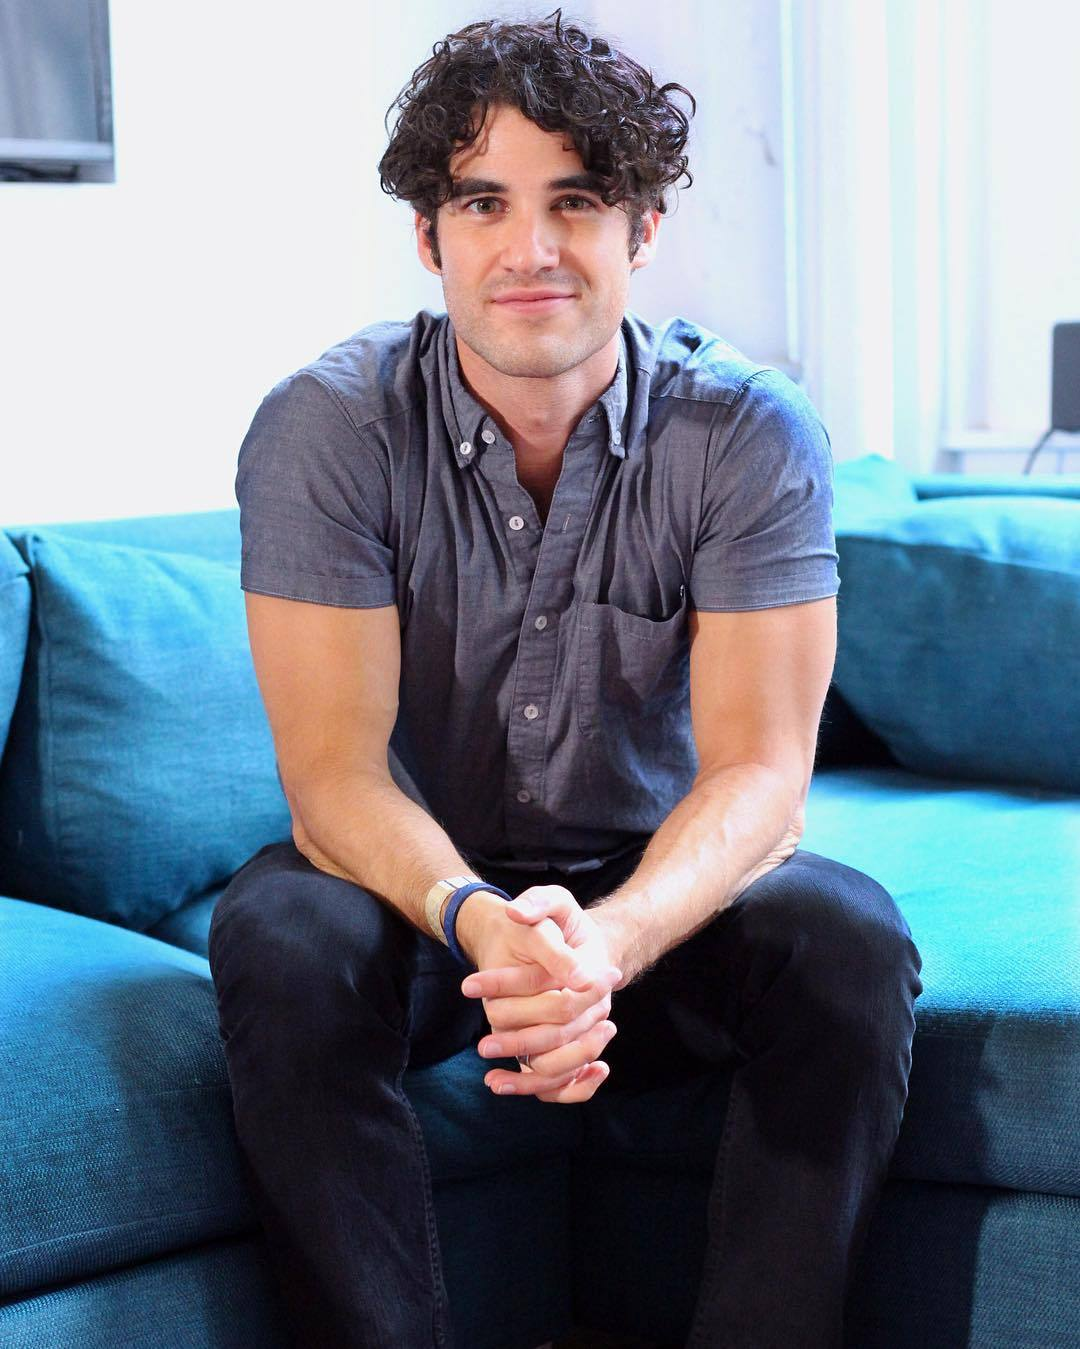 Nyc -  Darren Appreciation Thread: General News about Darren for 2016  - Page 11 Tumblr_oeaezbfdia1uetdyxo1_1280